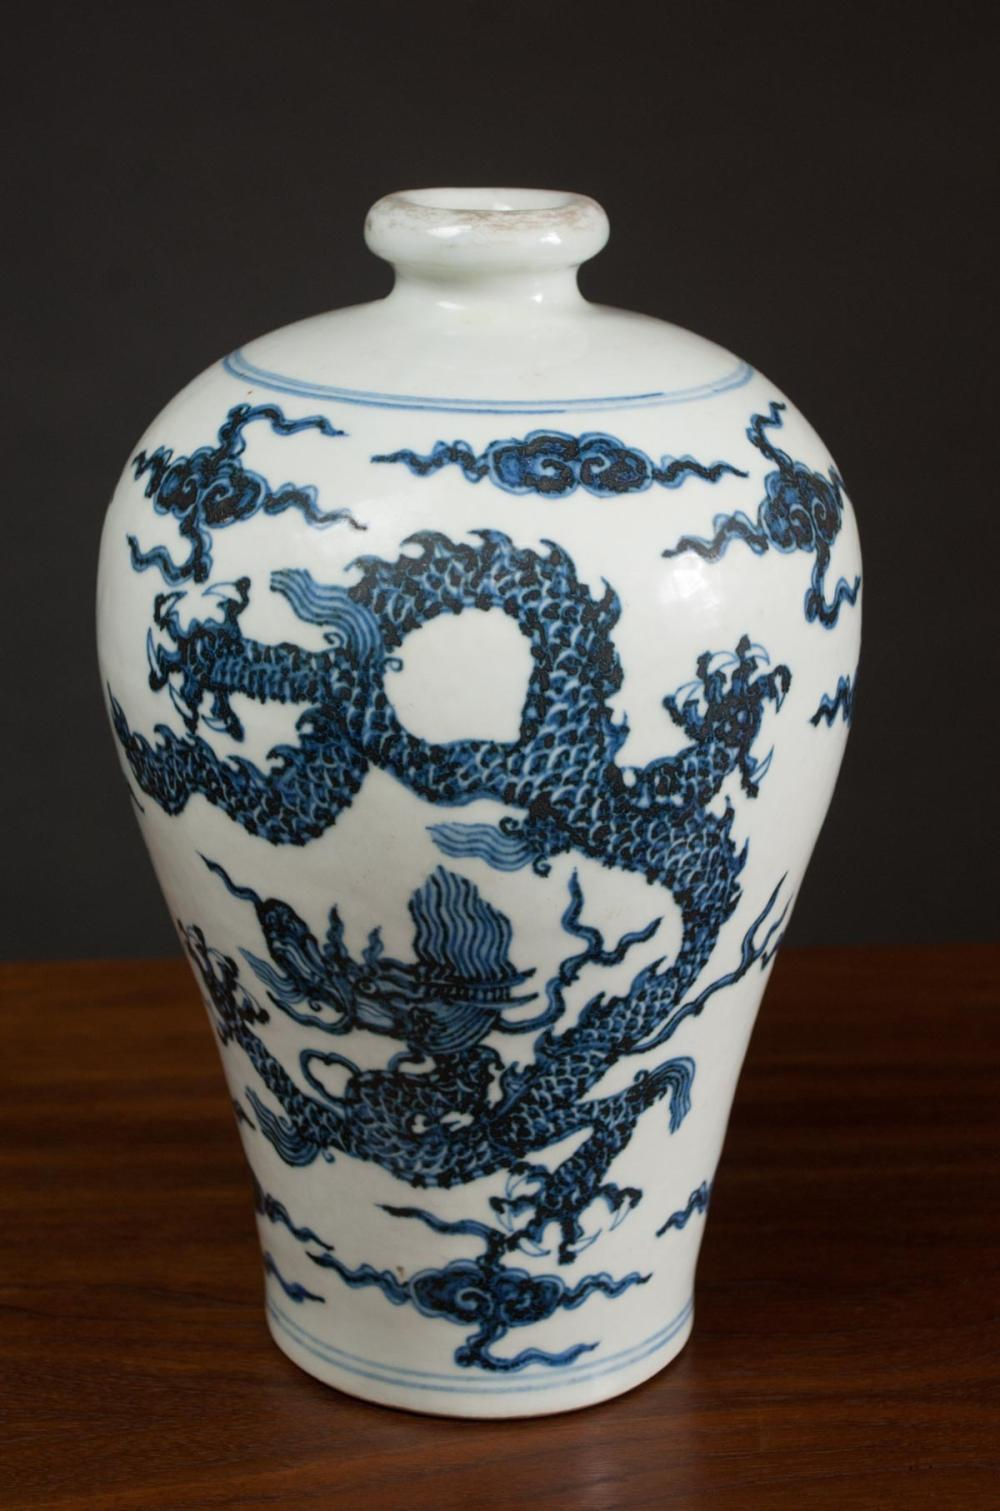 Lot 545: CHINESE BLUE AND WHITE PORCELAIN VASE, Ming style,